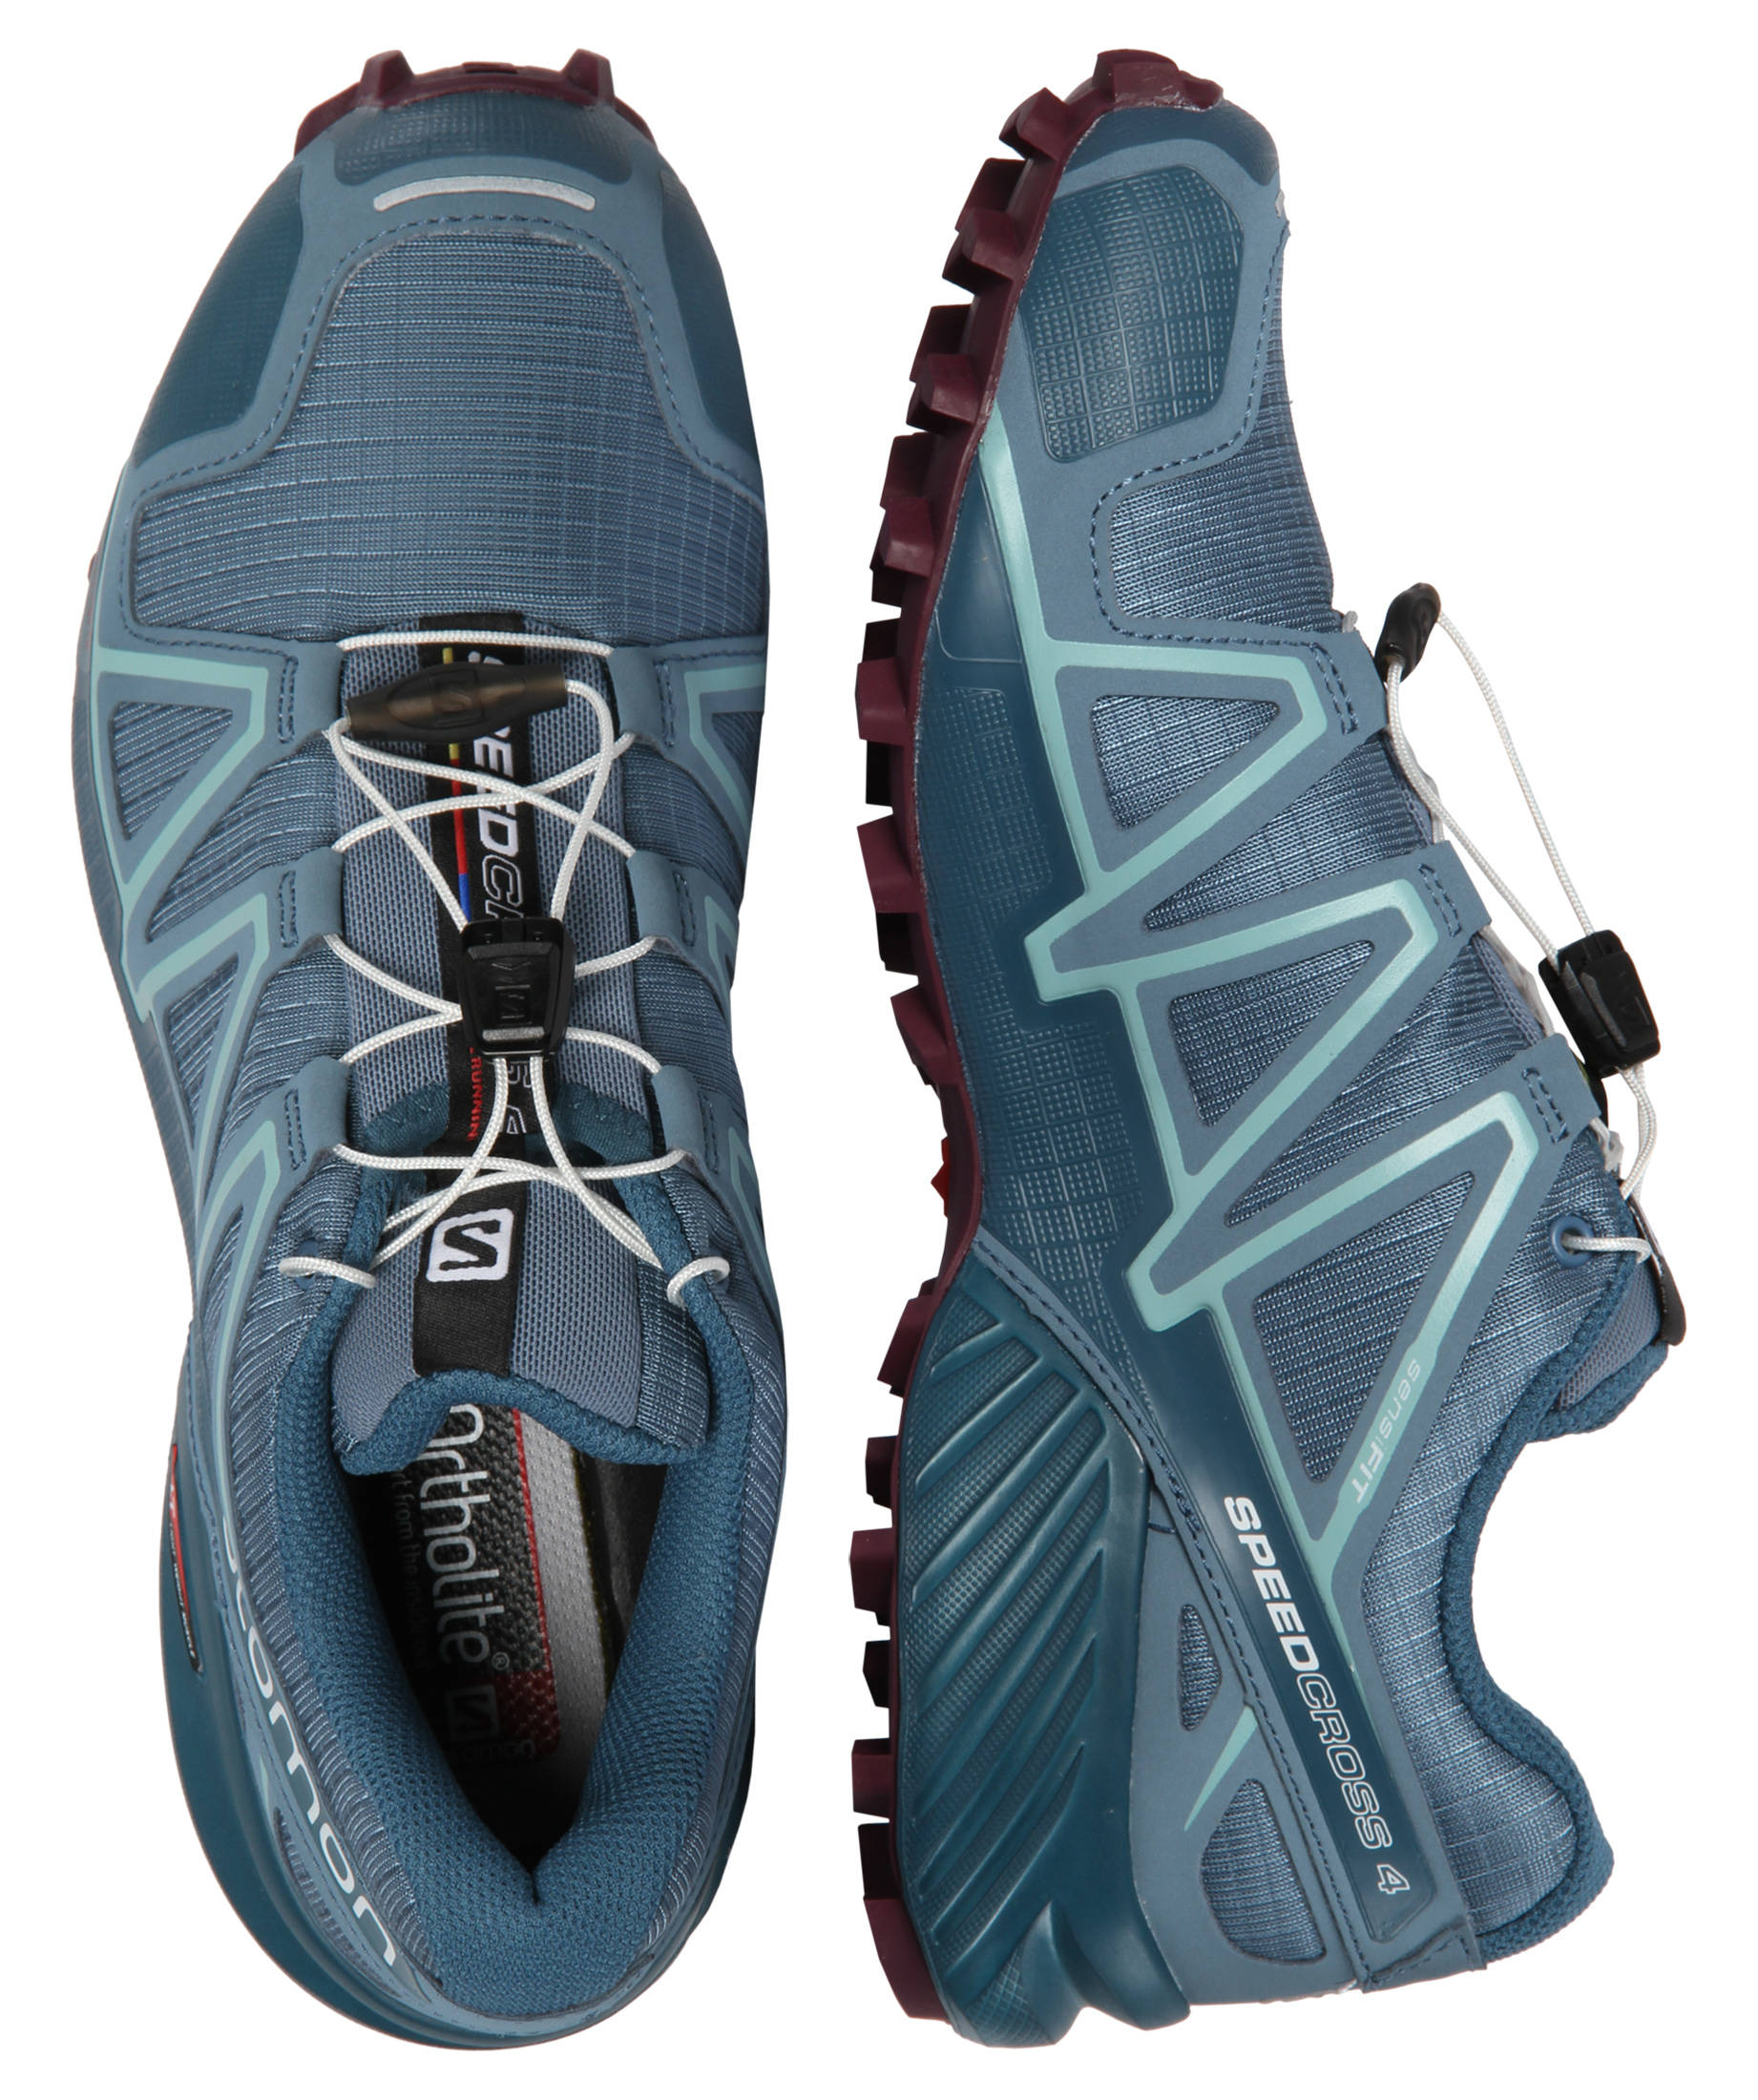 Salomon Damen Trailrunning Schuhe